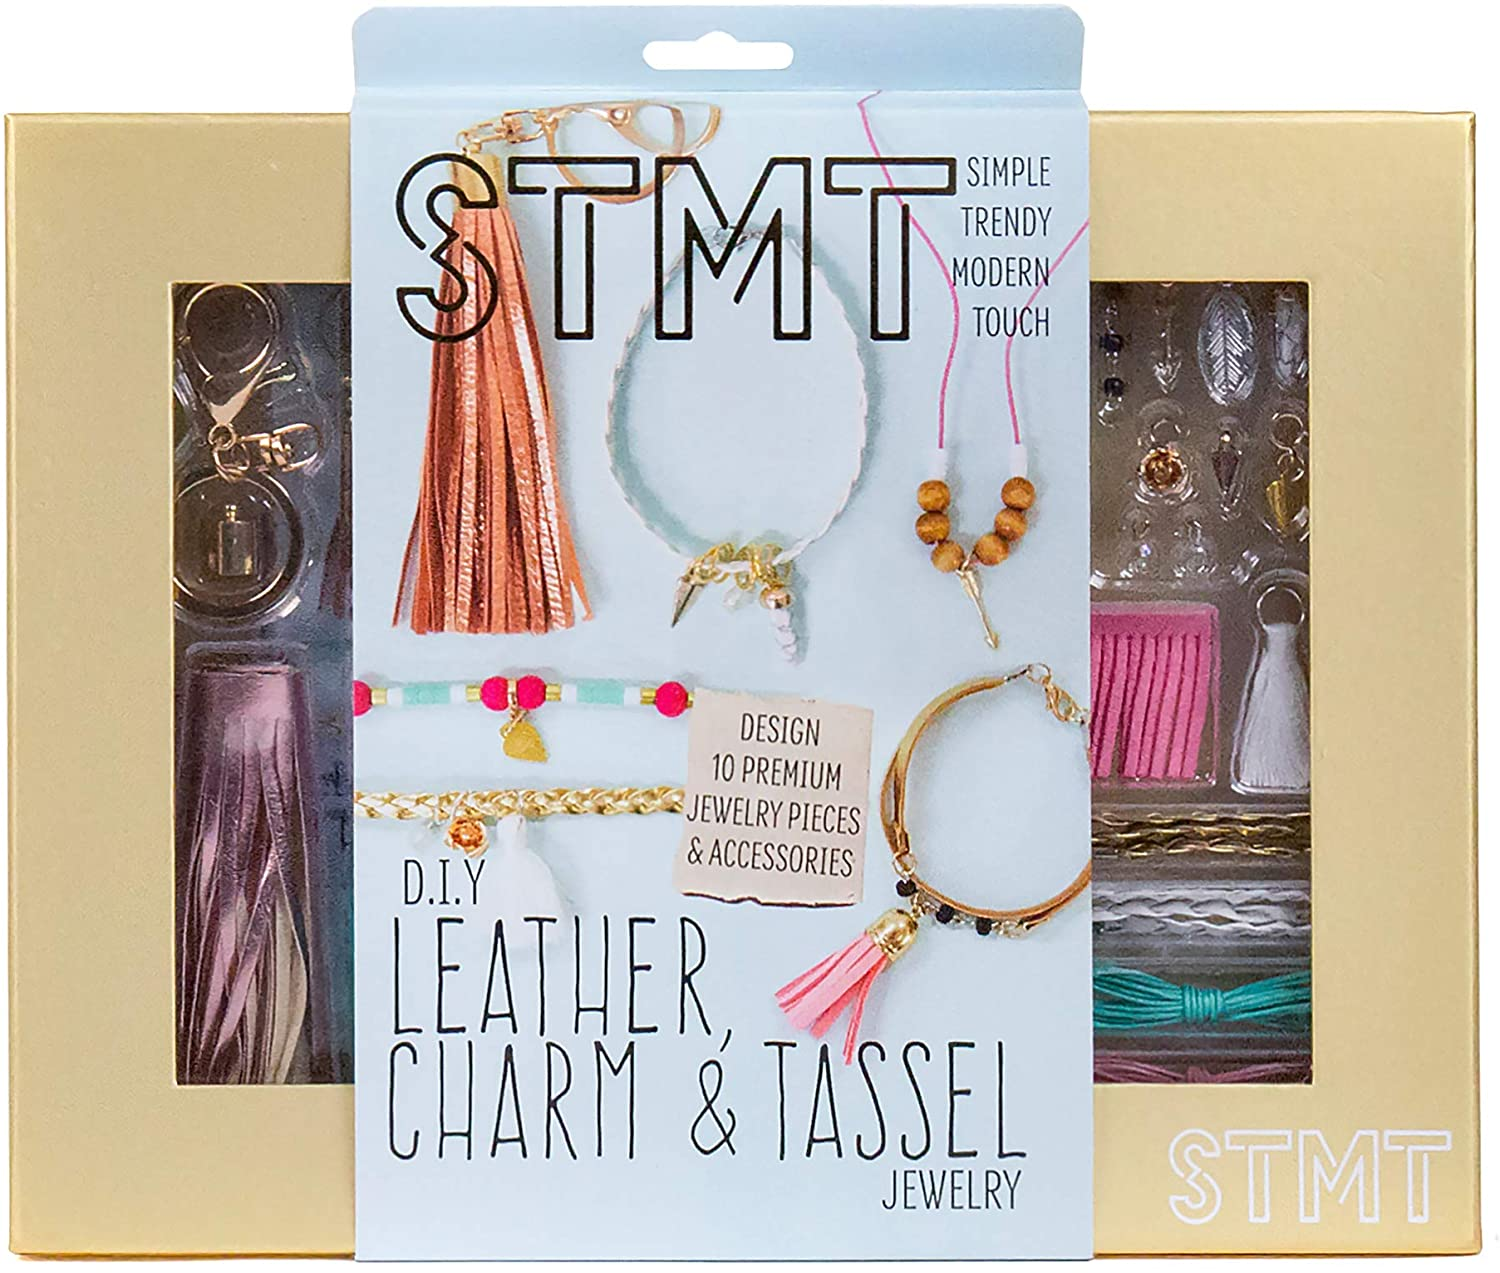 STMT D.I.Y LEATHER, CHARM & TASSEL JEWELRY